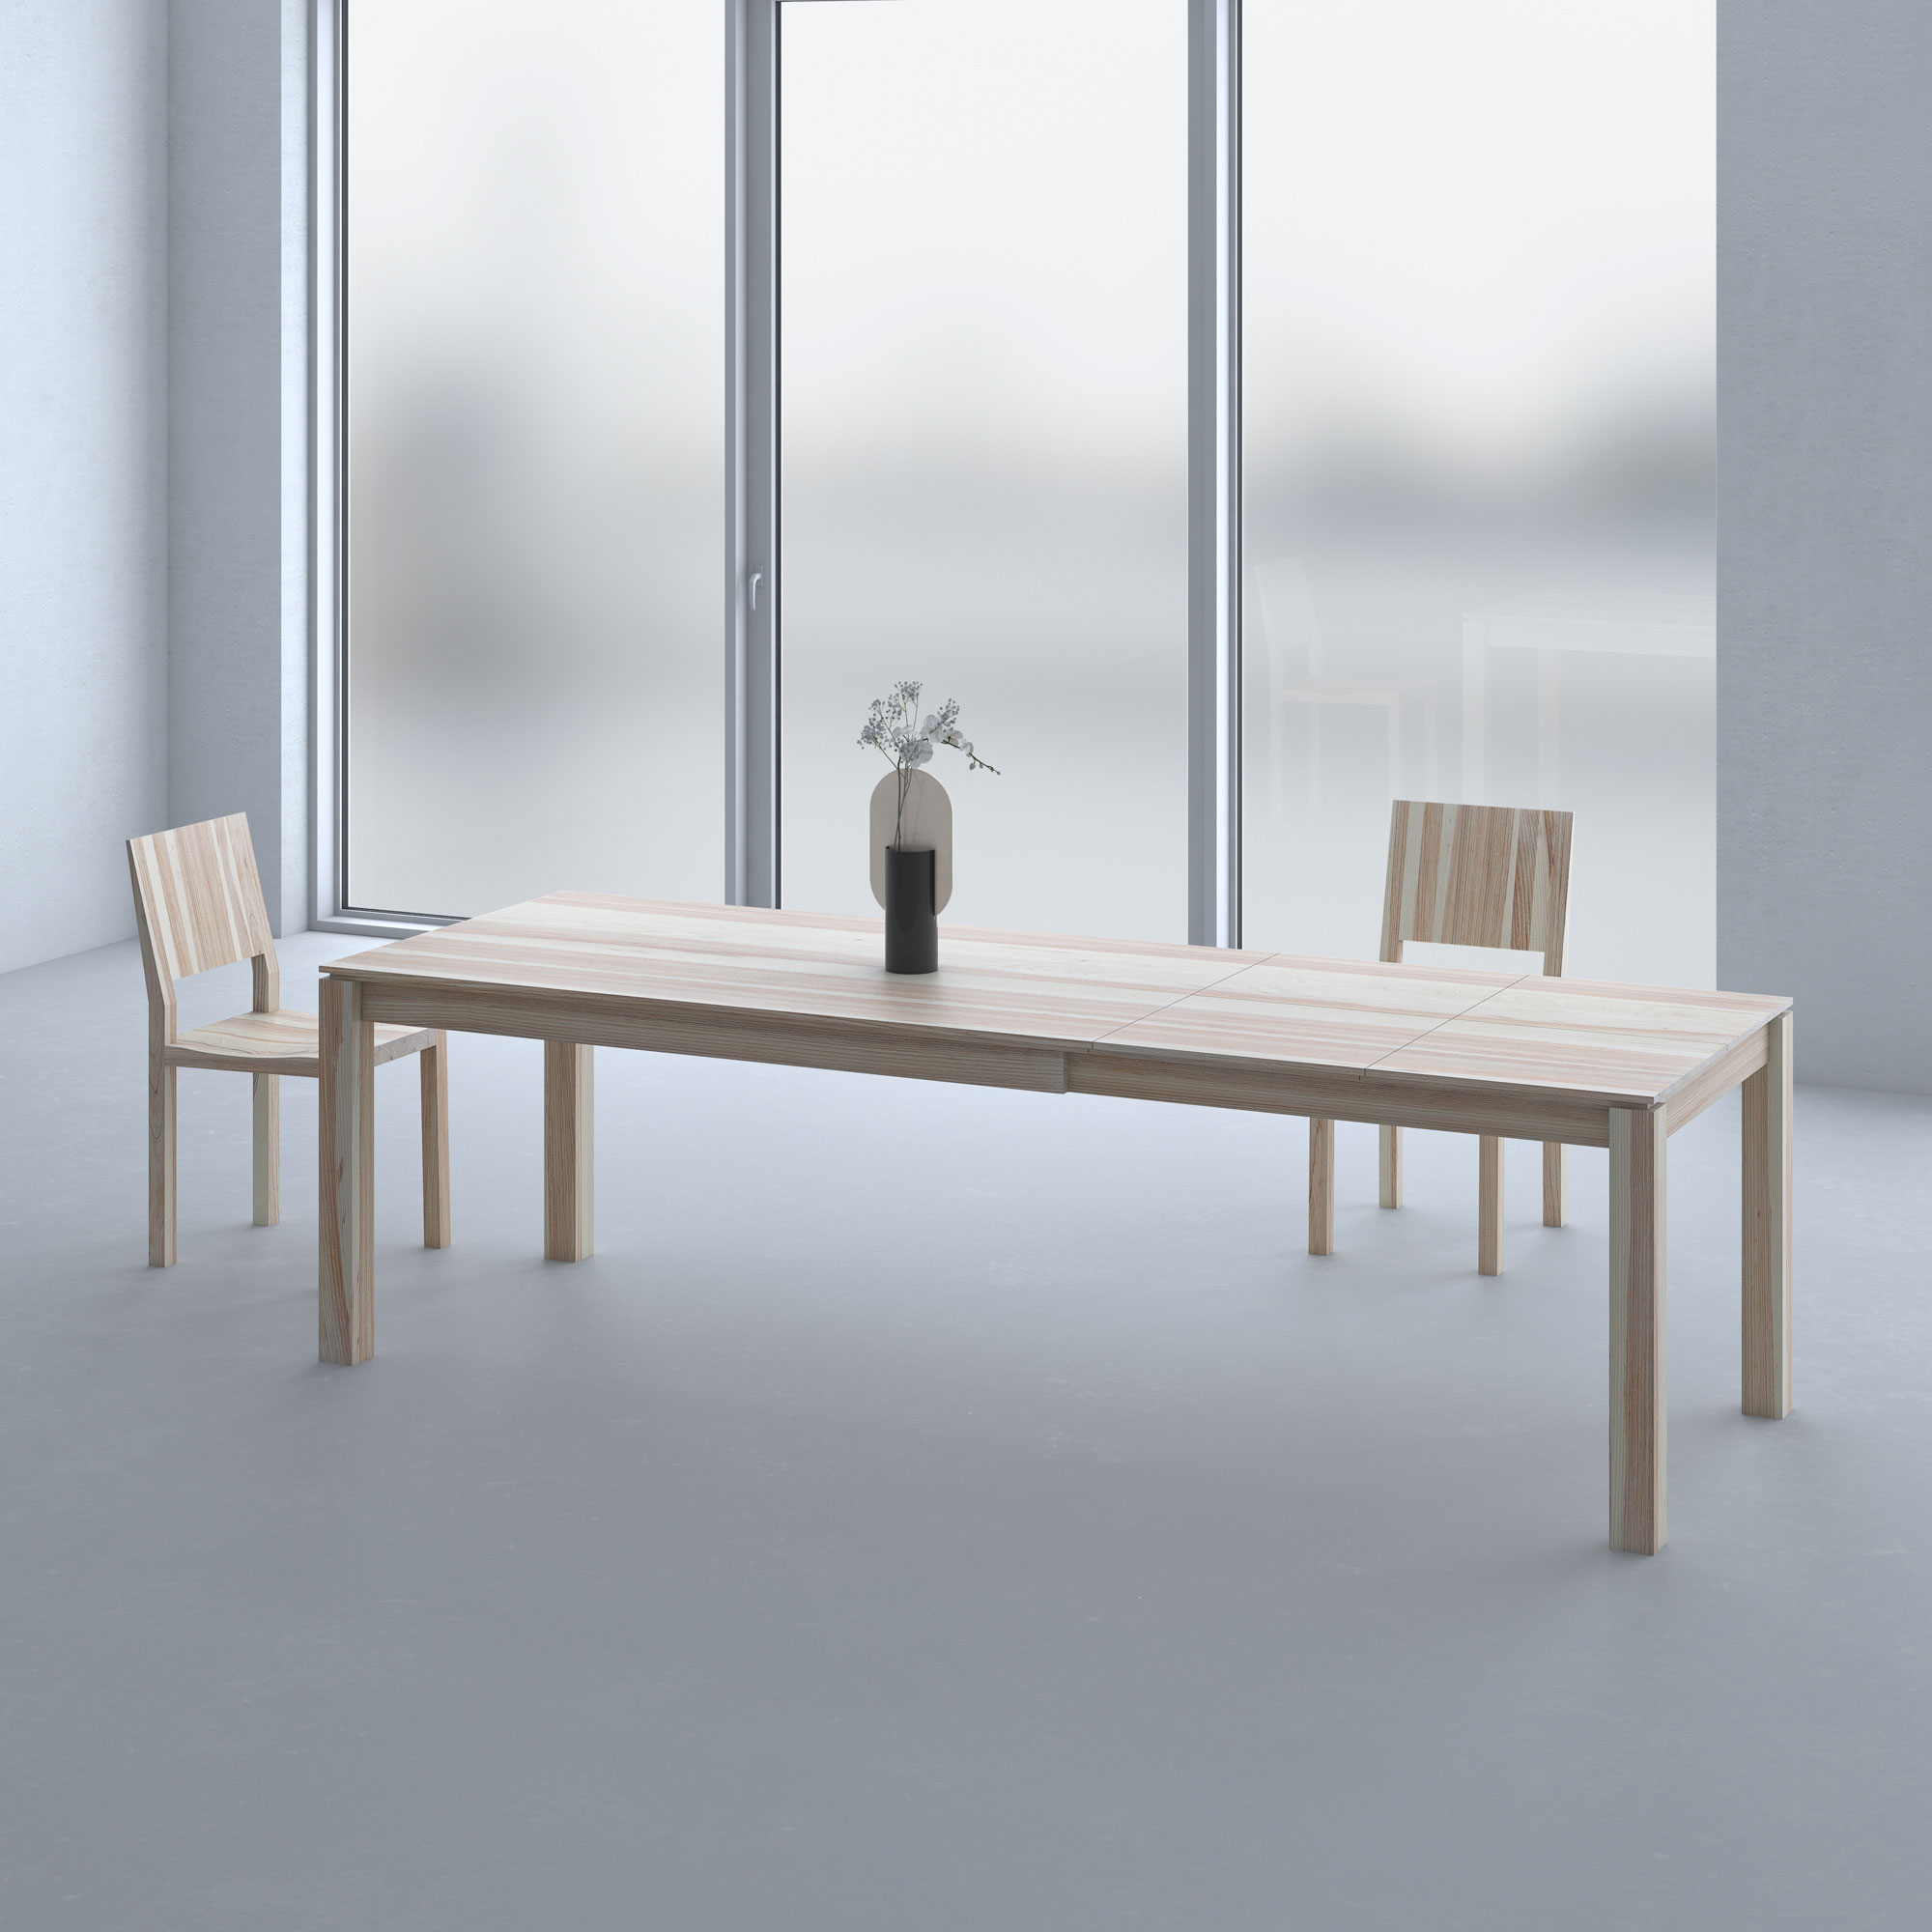 Extending Dining Table CONVERTO BUTTERFLY cam1 custom made in solid wood by vitamin design